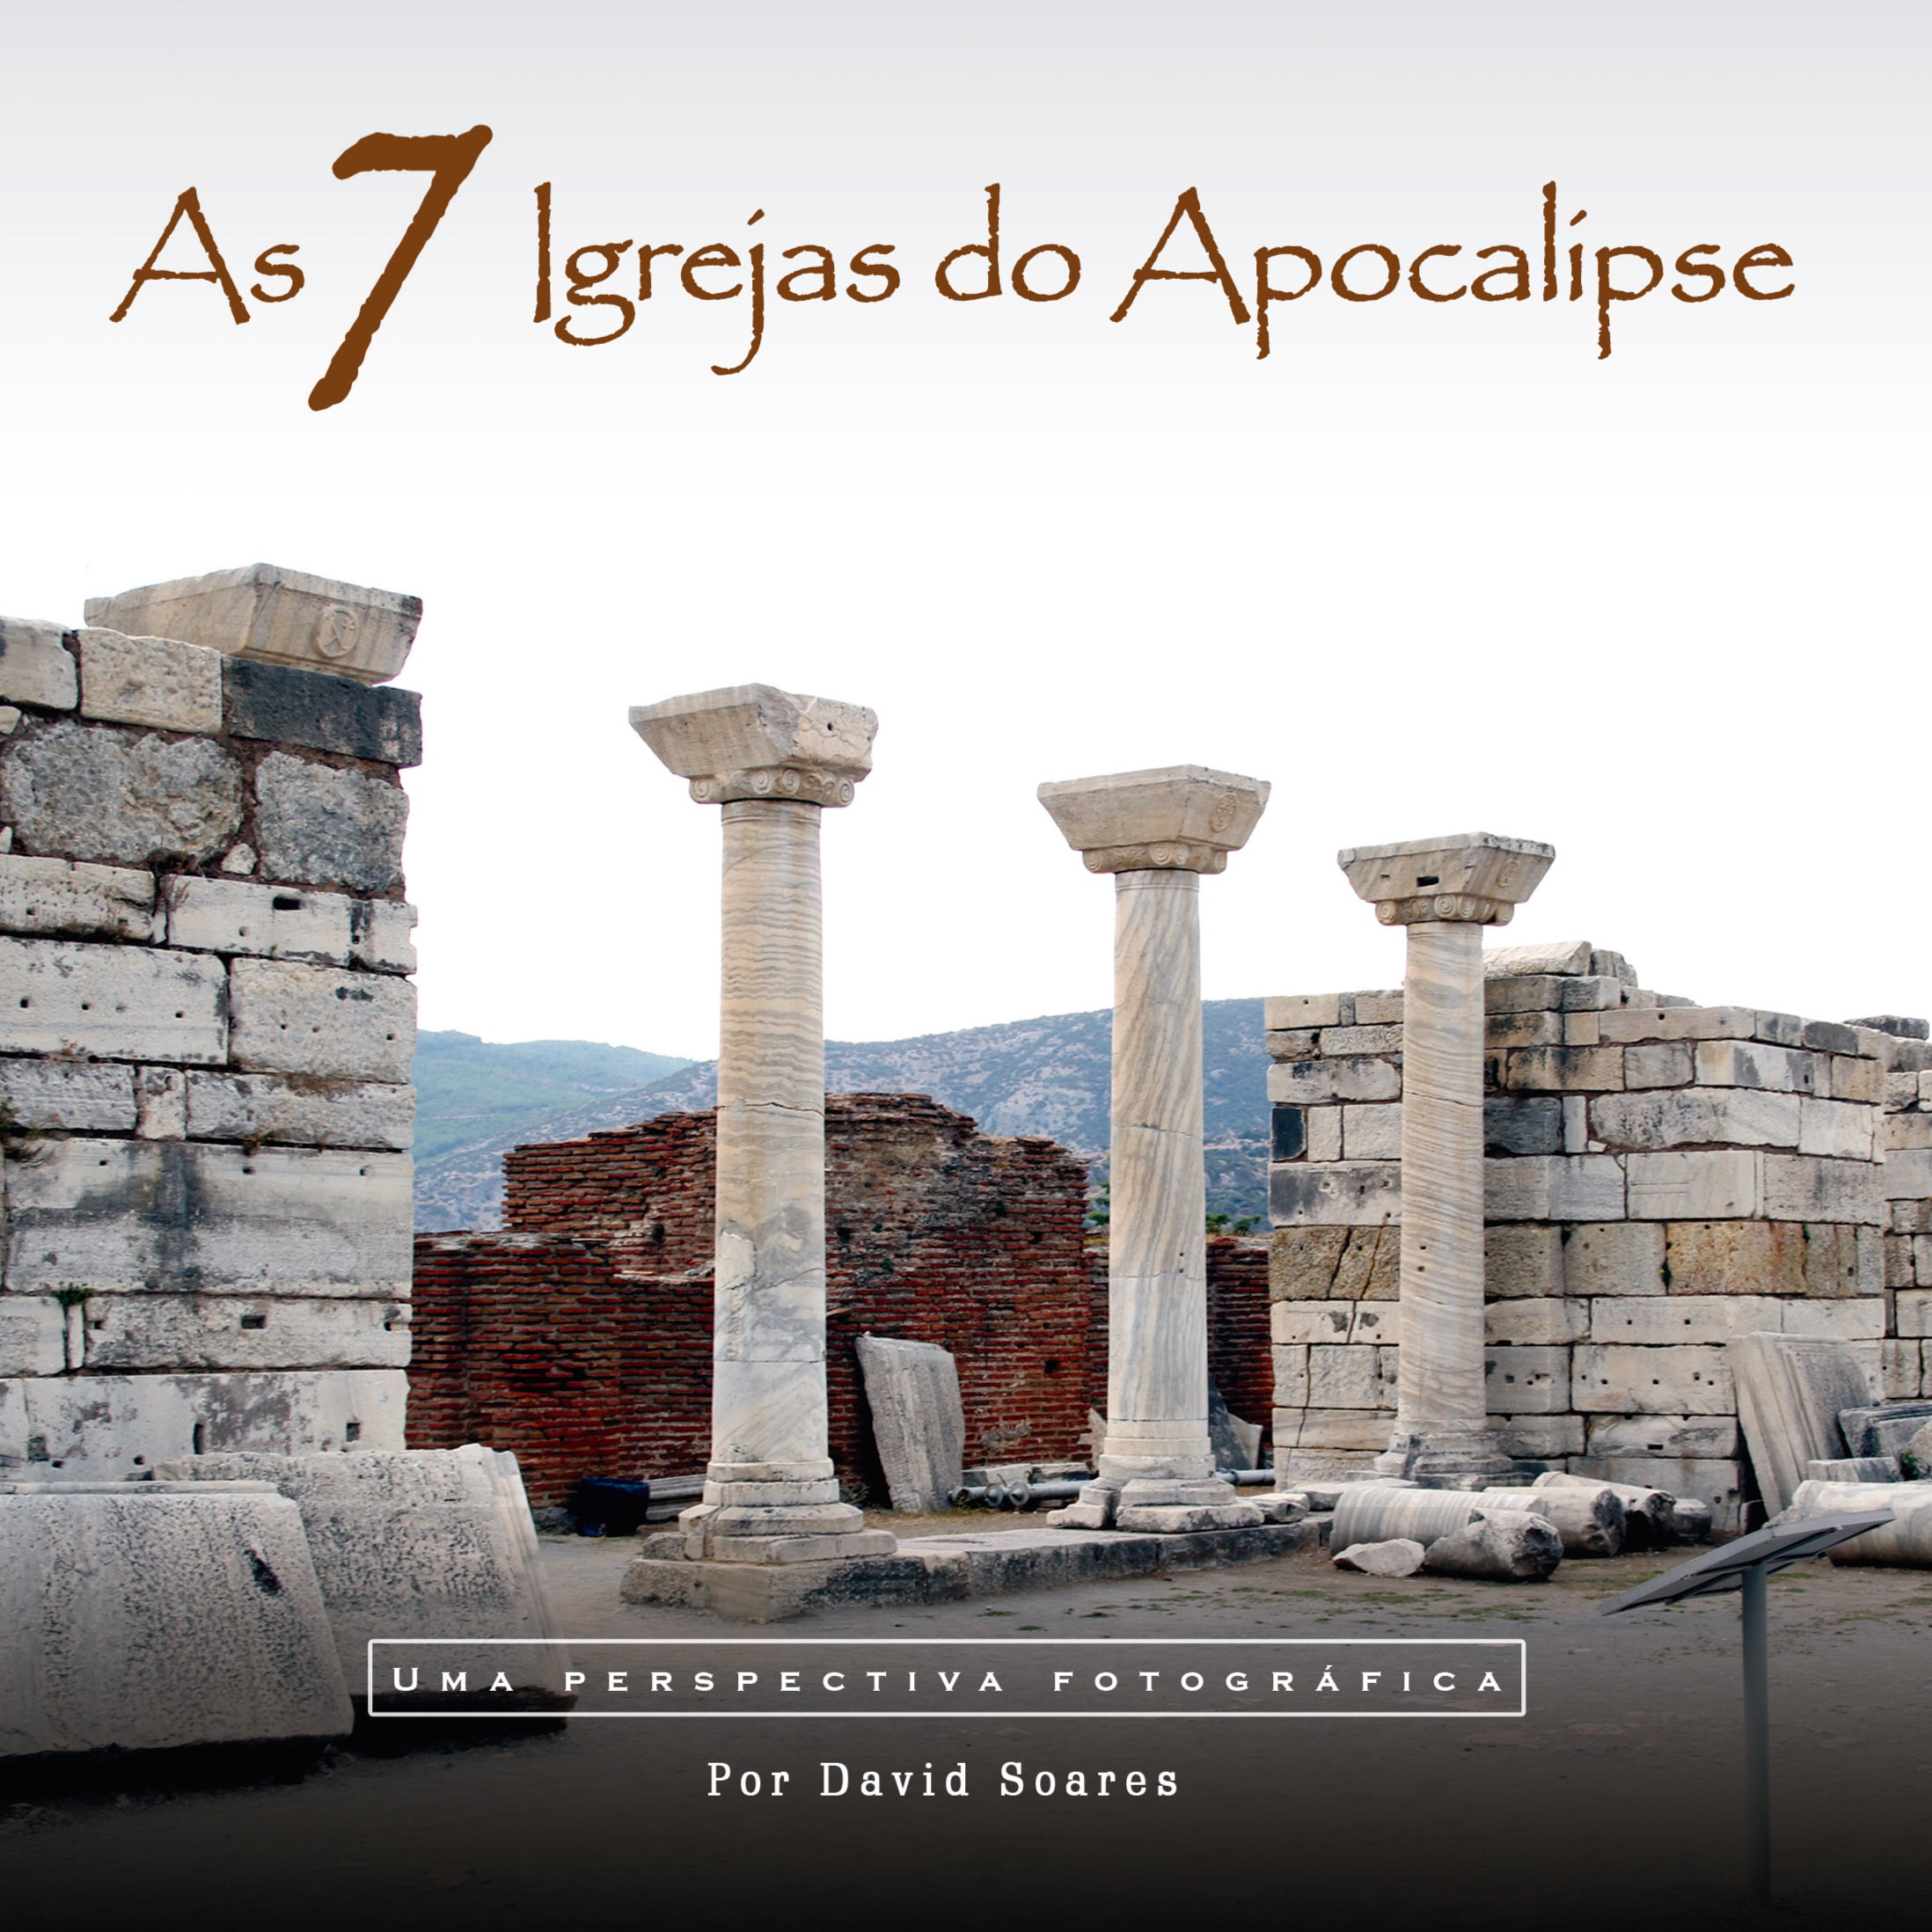 Livro As 7 igrejas do Apocalipse